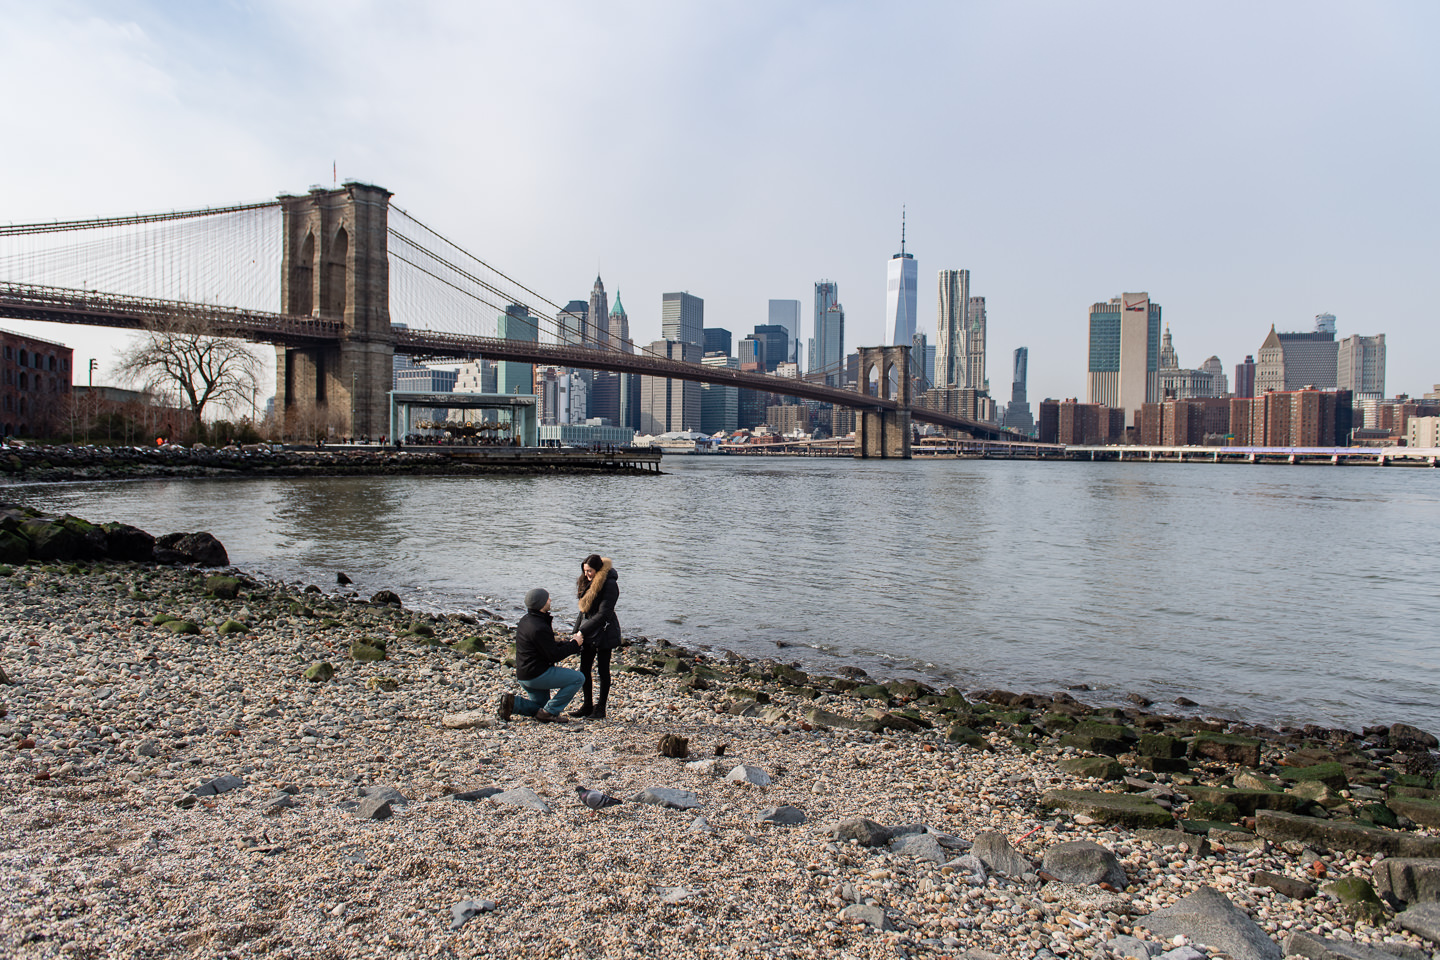 Proposal in Dumbo, Brooklyn with NYC skyline and Brooklyn Bridge in the background along the shore of the East River